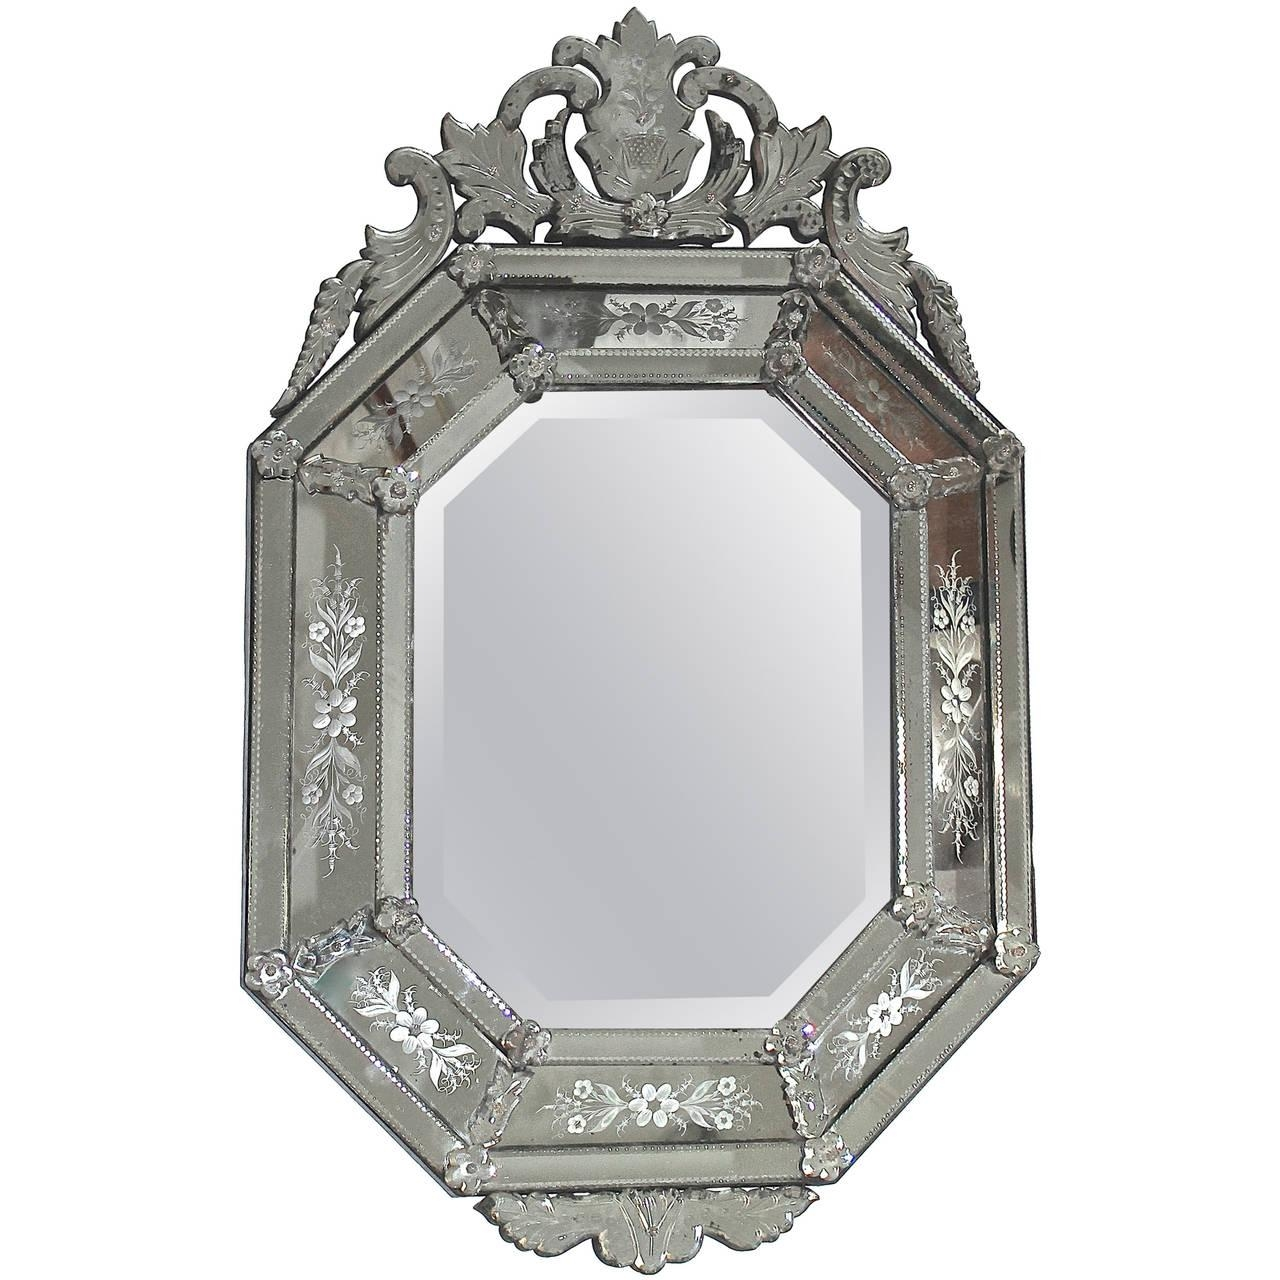 Italian Venetian Etched Glass Wall Mirror For Sale At 1Stdibs For Venetian Glass Mirrors Sale (Image 10 of 20)